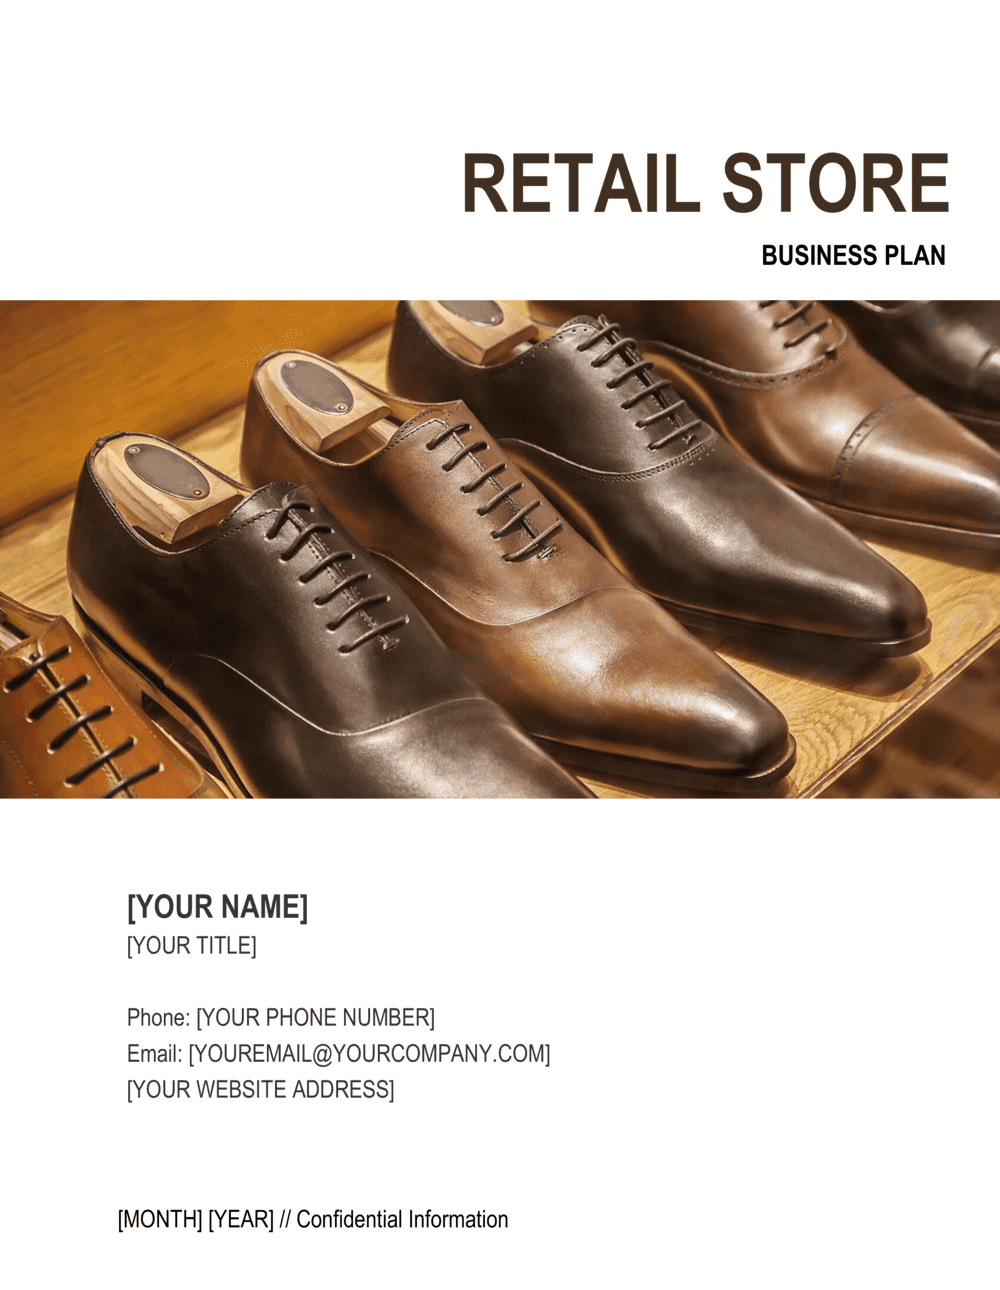 Business-in-a-Box's Retail Store Business Plan Template